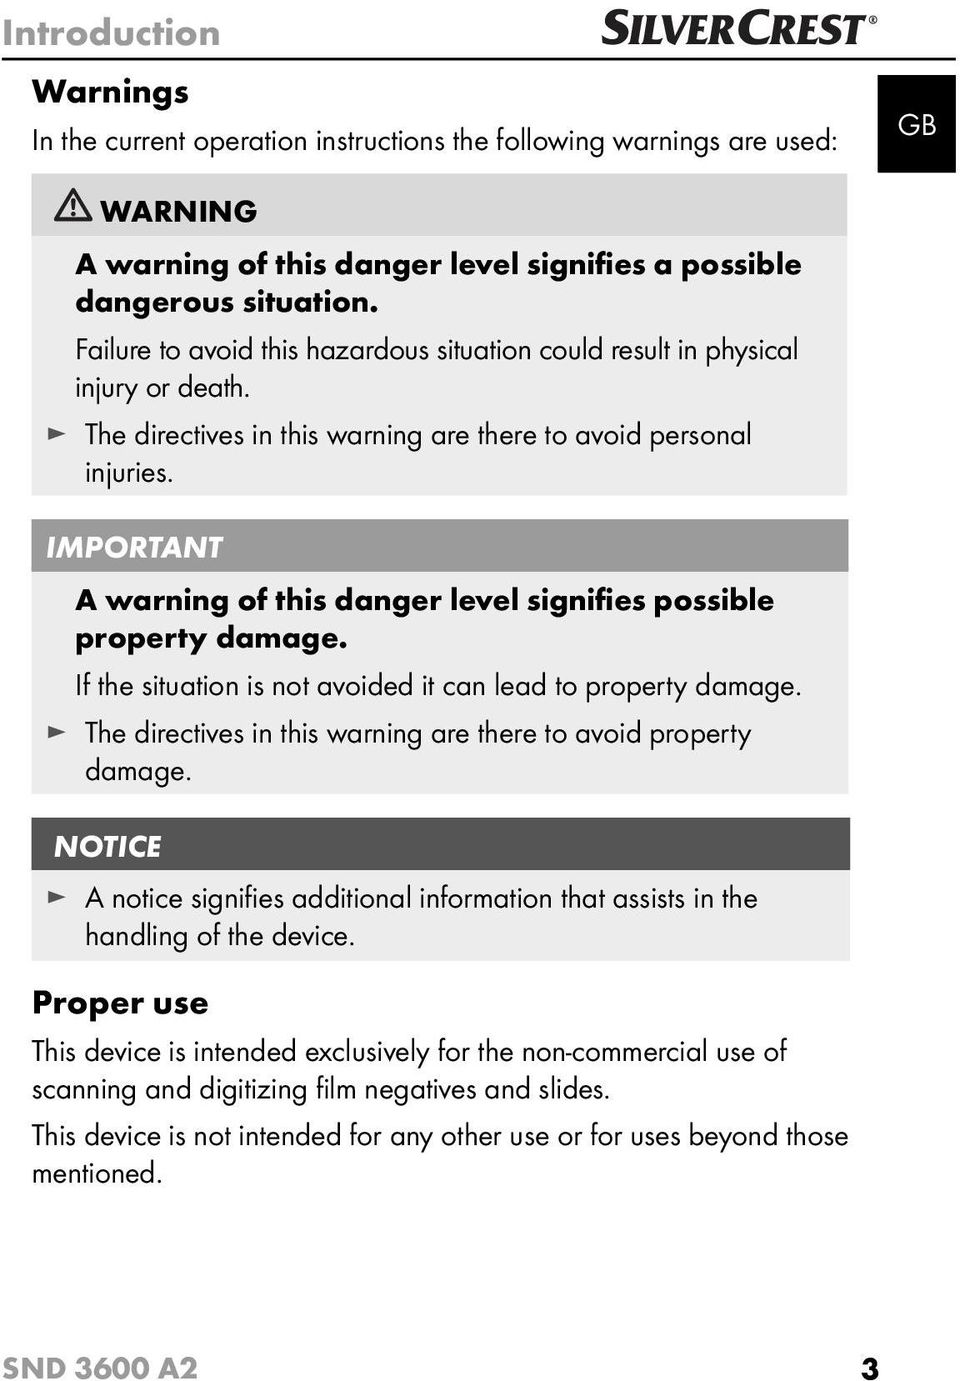 IMPORTANT A warning of this danger level signifies possible property damage. If the situation is not avoided it can lead to property damage.